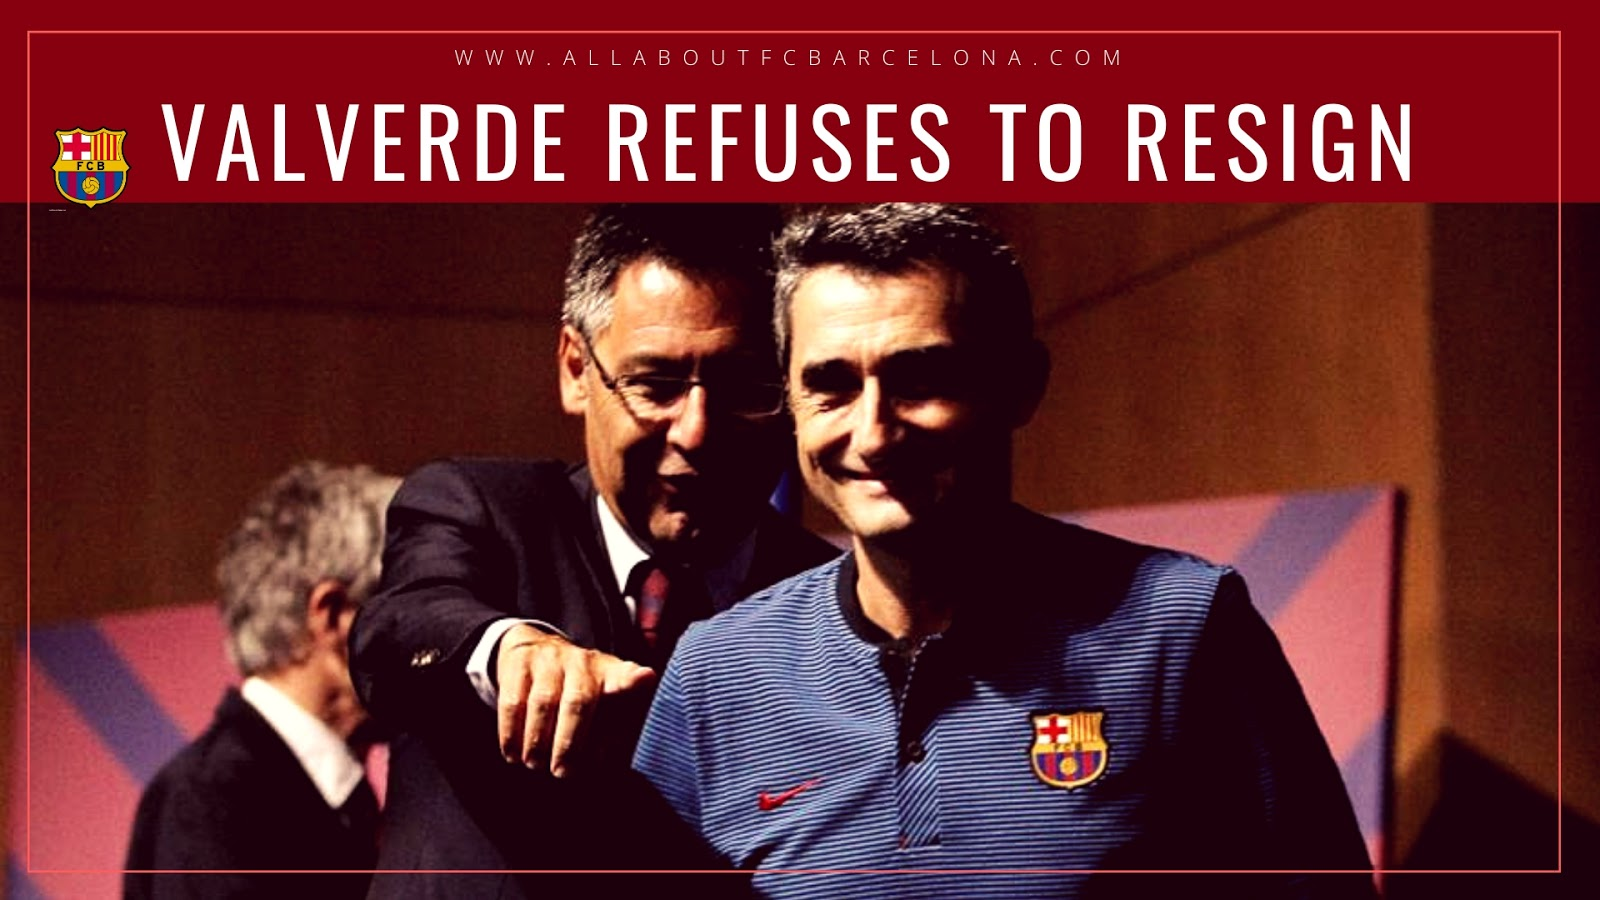 Money Money!! Valverde Refuses to Leave Despite the Absolute Humiliation!